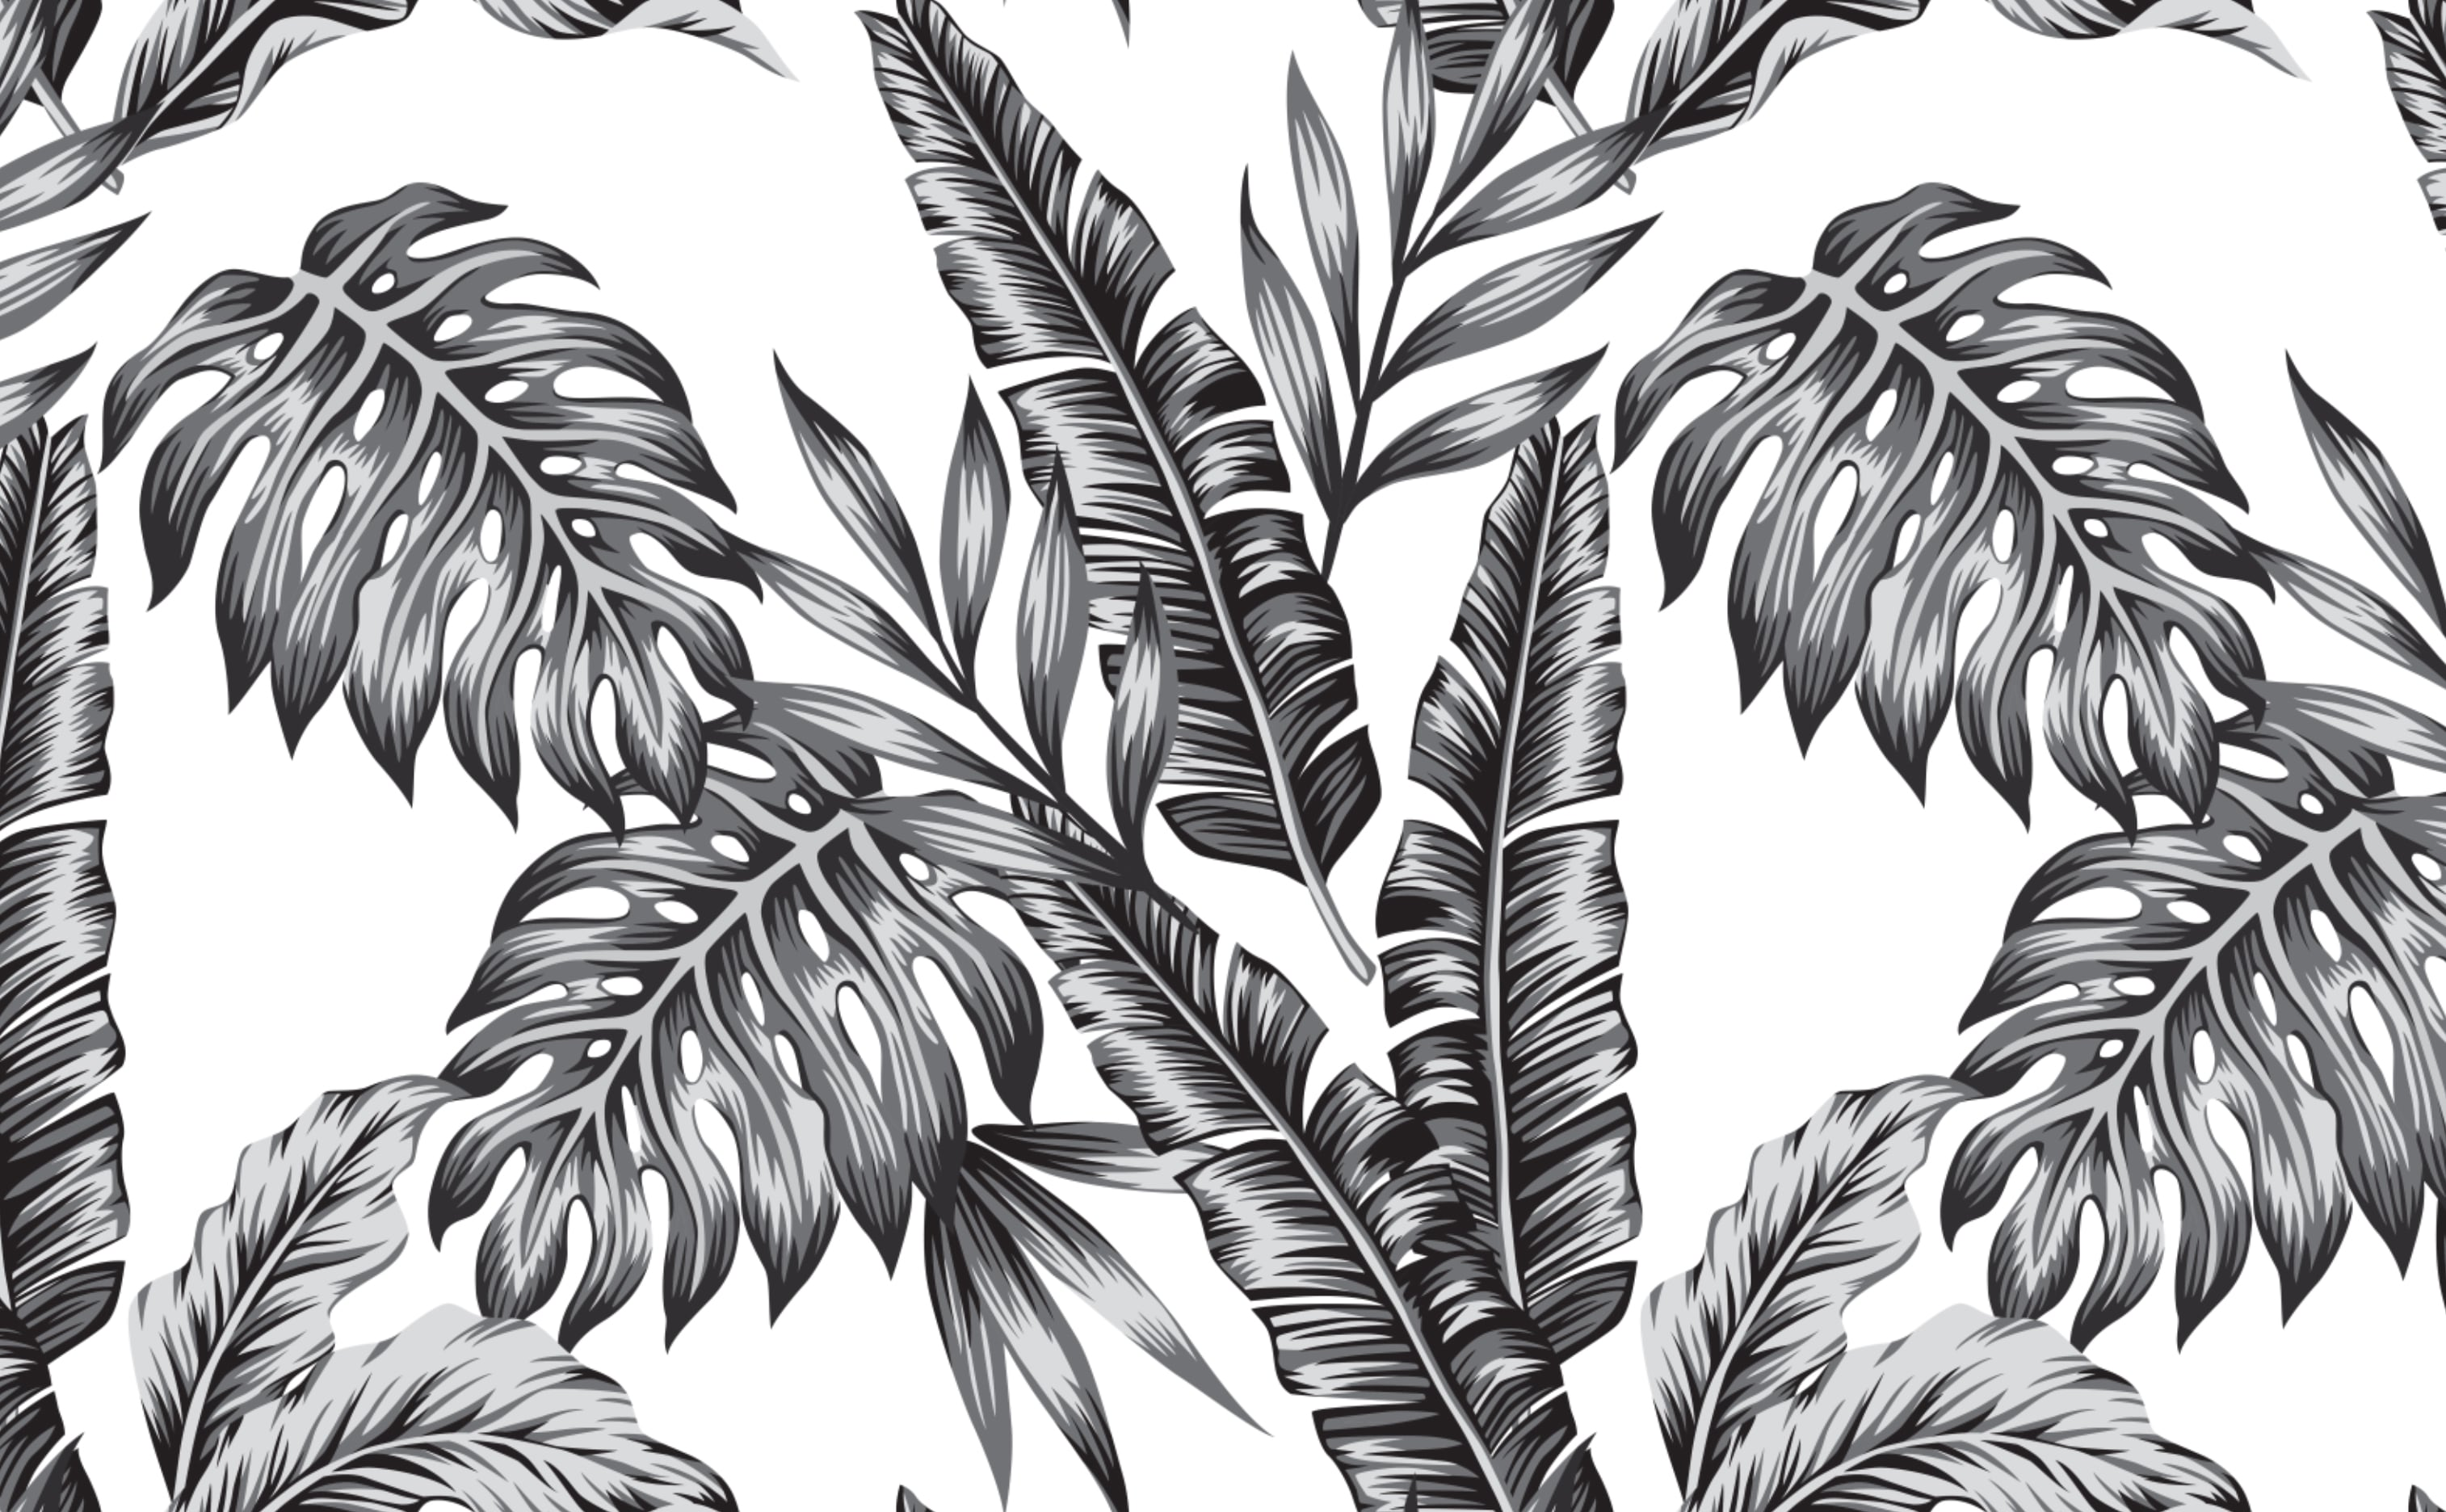 w0074 1s Palm Leaves Tropical Wallpaper for Walls Retro Palms Black Repeating Pattern Sample 1